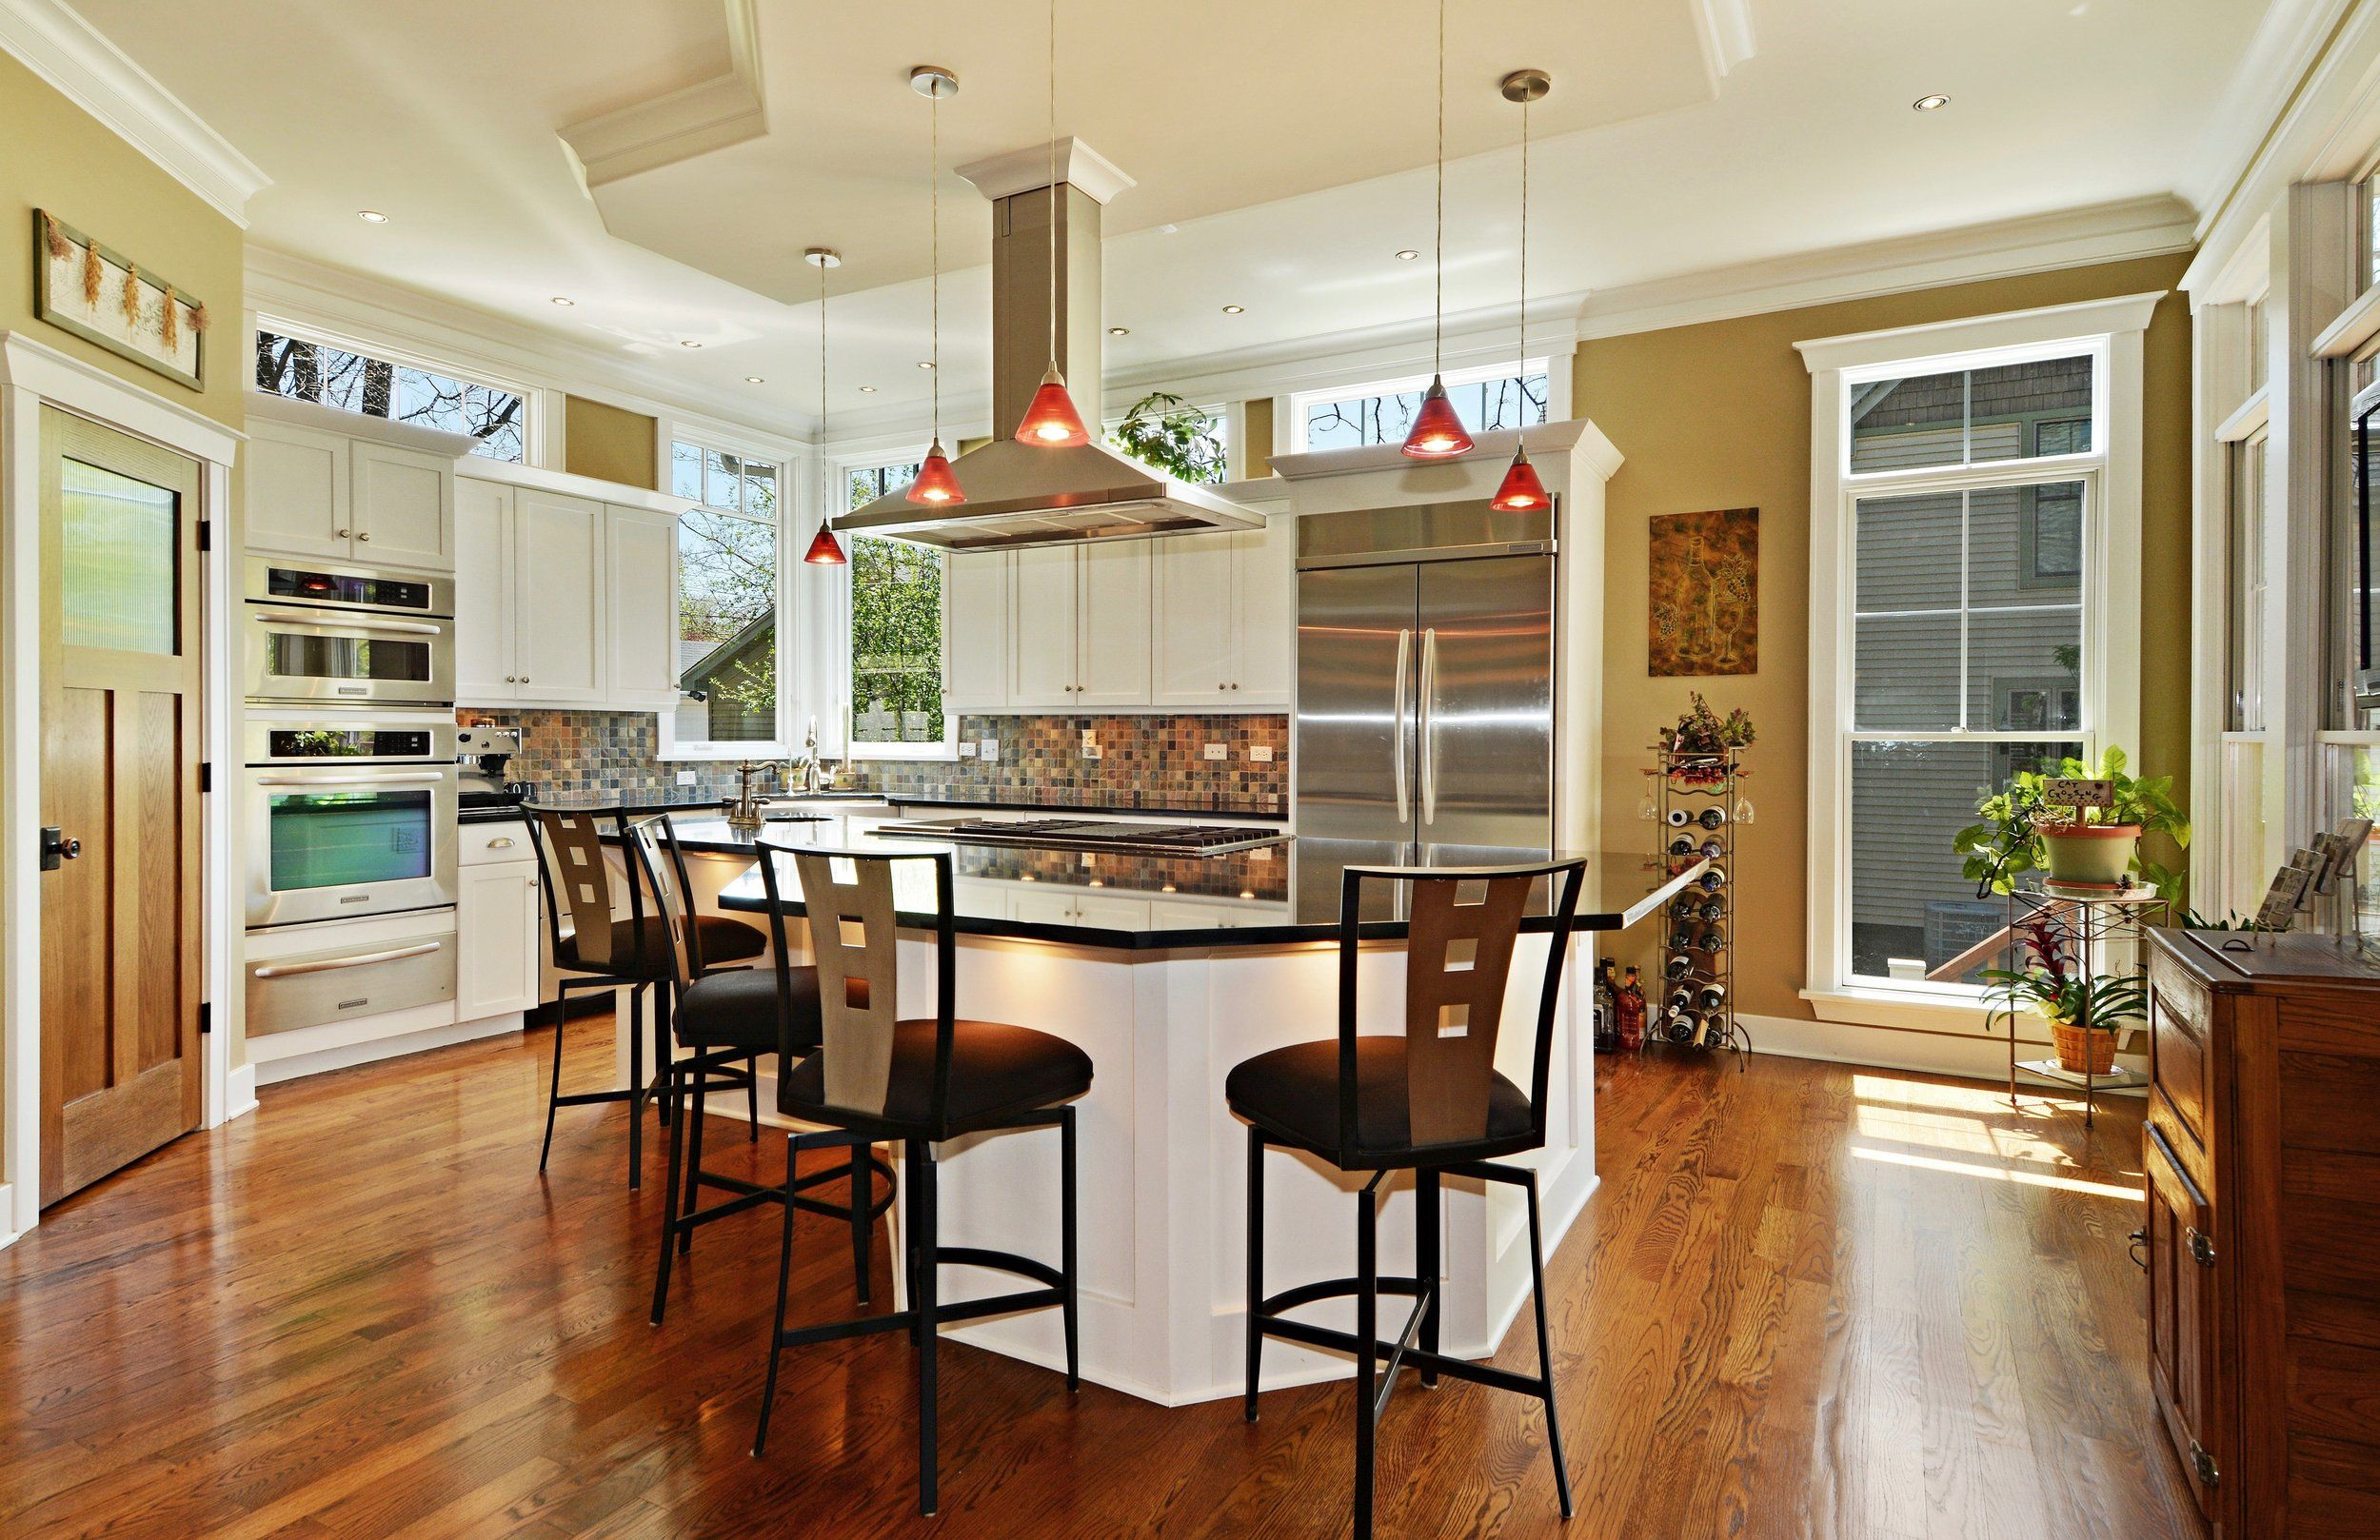 Transitional Custom Kitchen With Transom Windows Above Cabinets Ceiling Mount Stainless St Affordable Kitchen Remodeling Kitchen Soffit Custom Kitchen Remodel